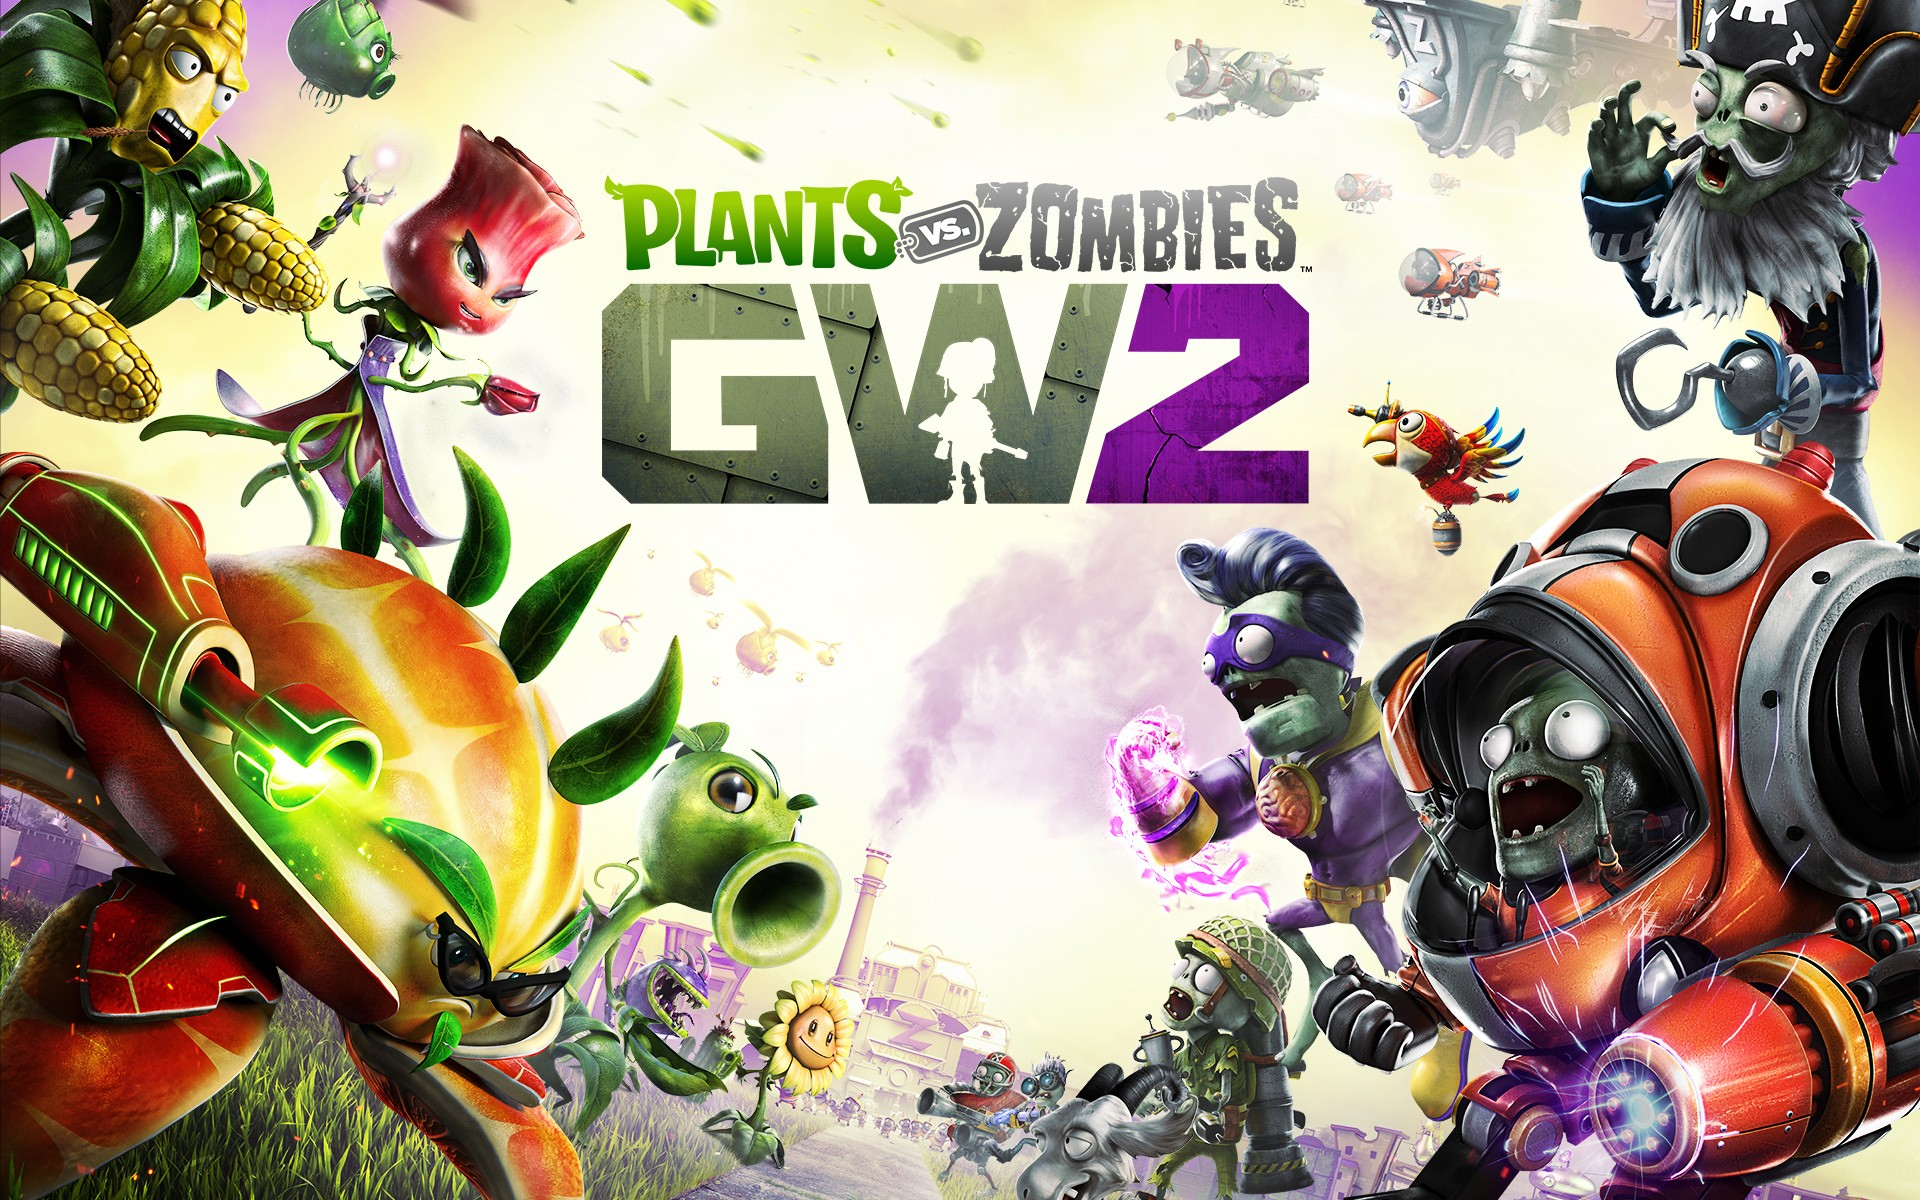 High Definition Cute Wallpapers Plants Vs Zombies Garden Warfare 2 Wallpapers Hd